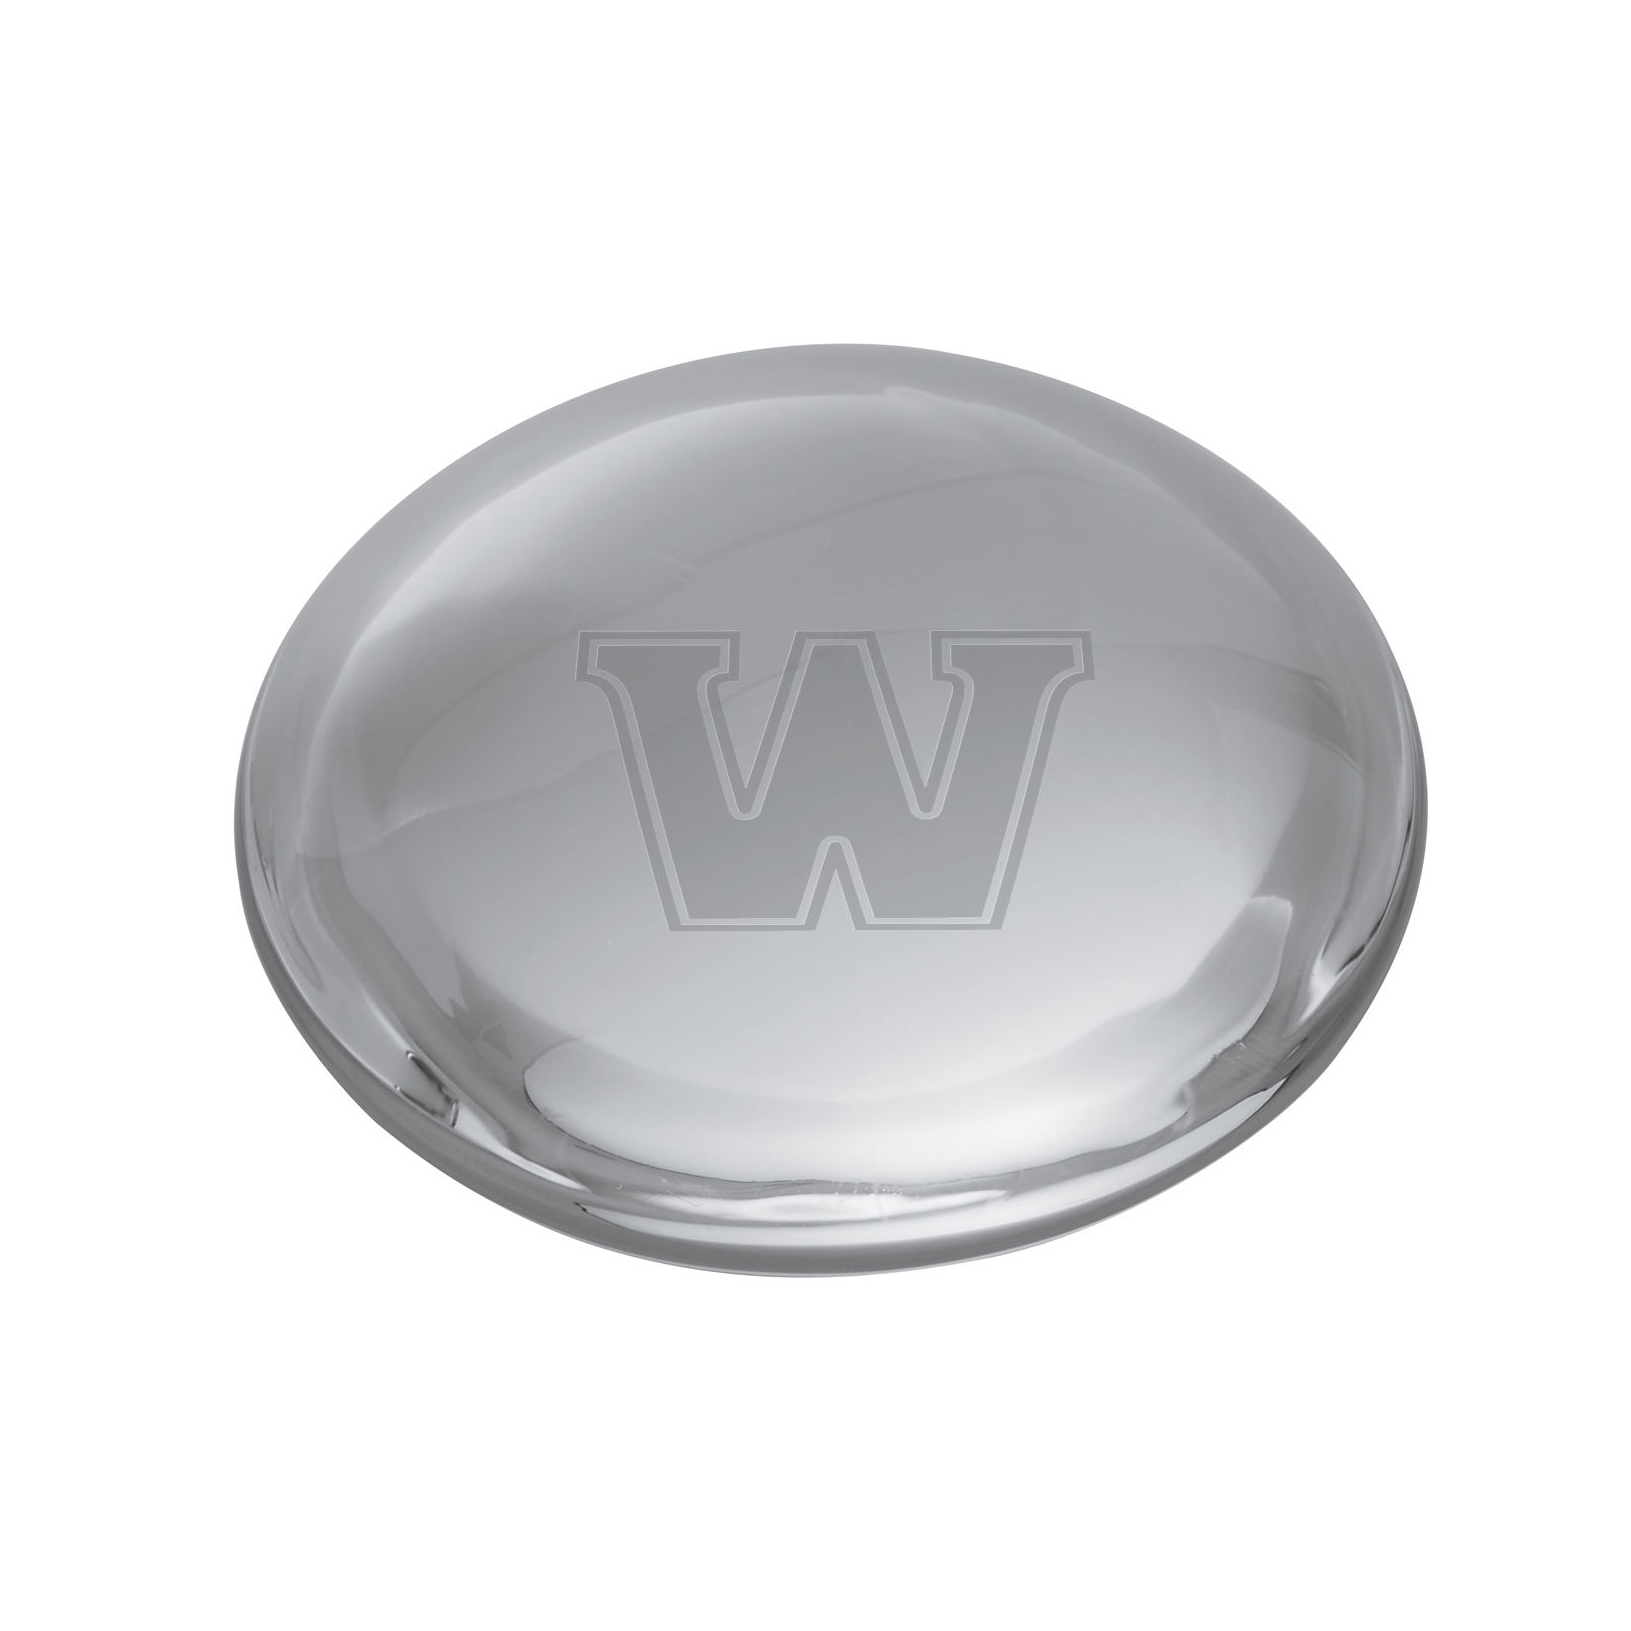 Williams Glass Dome Paperweight by Simon Pearce